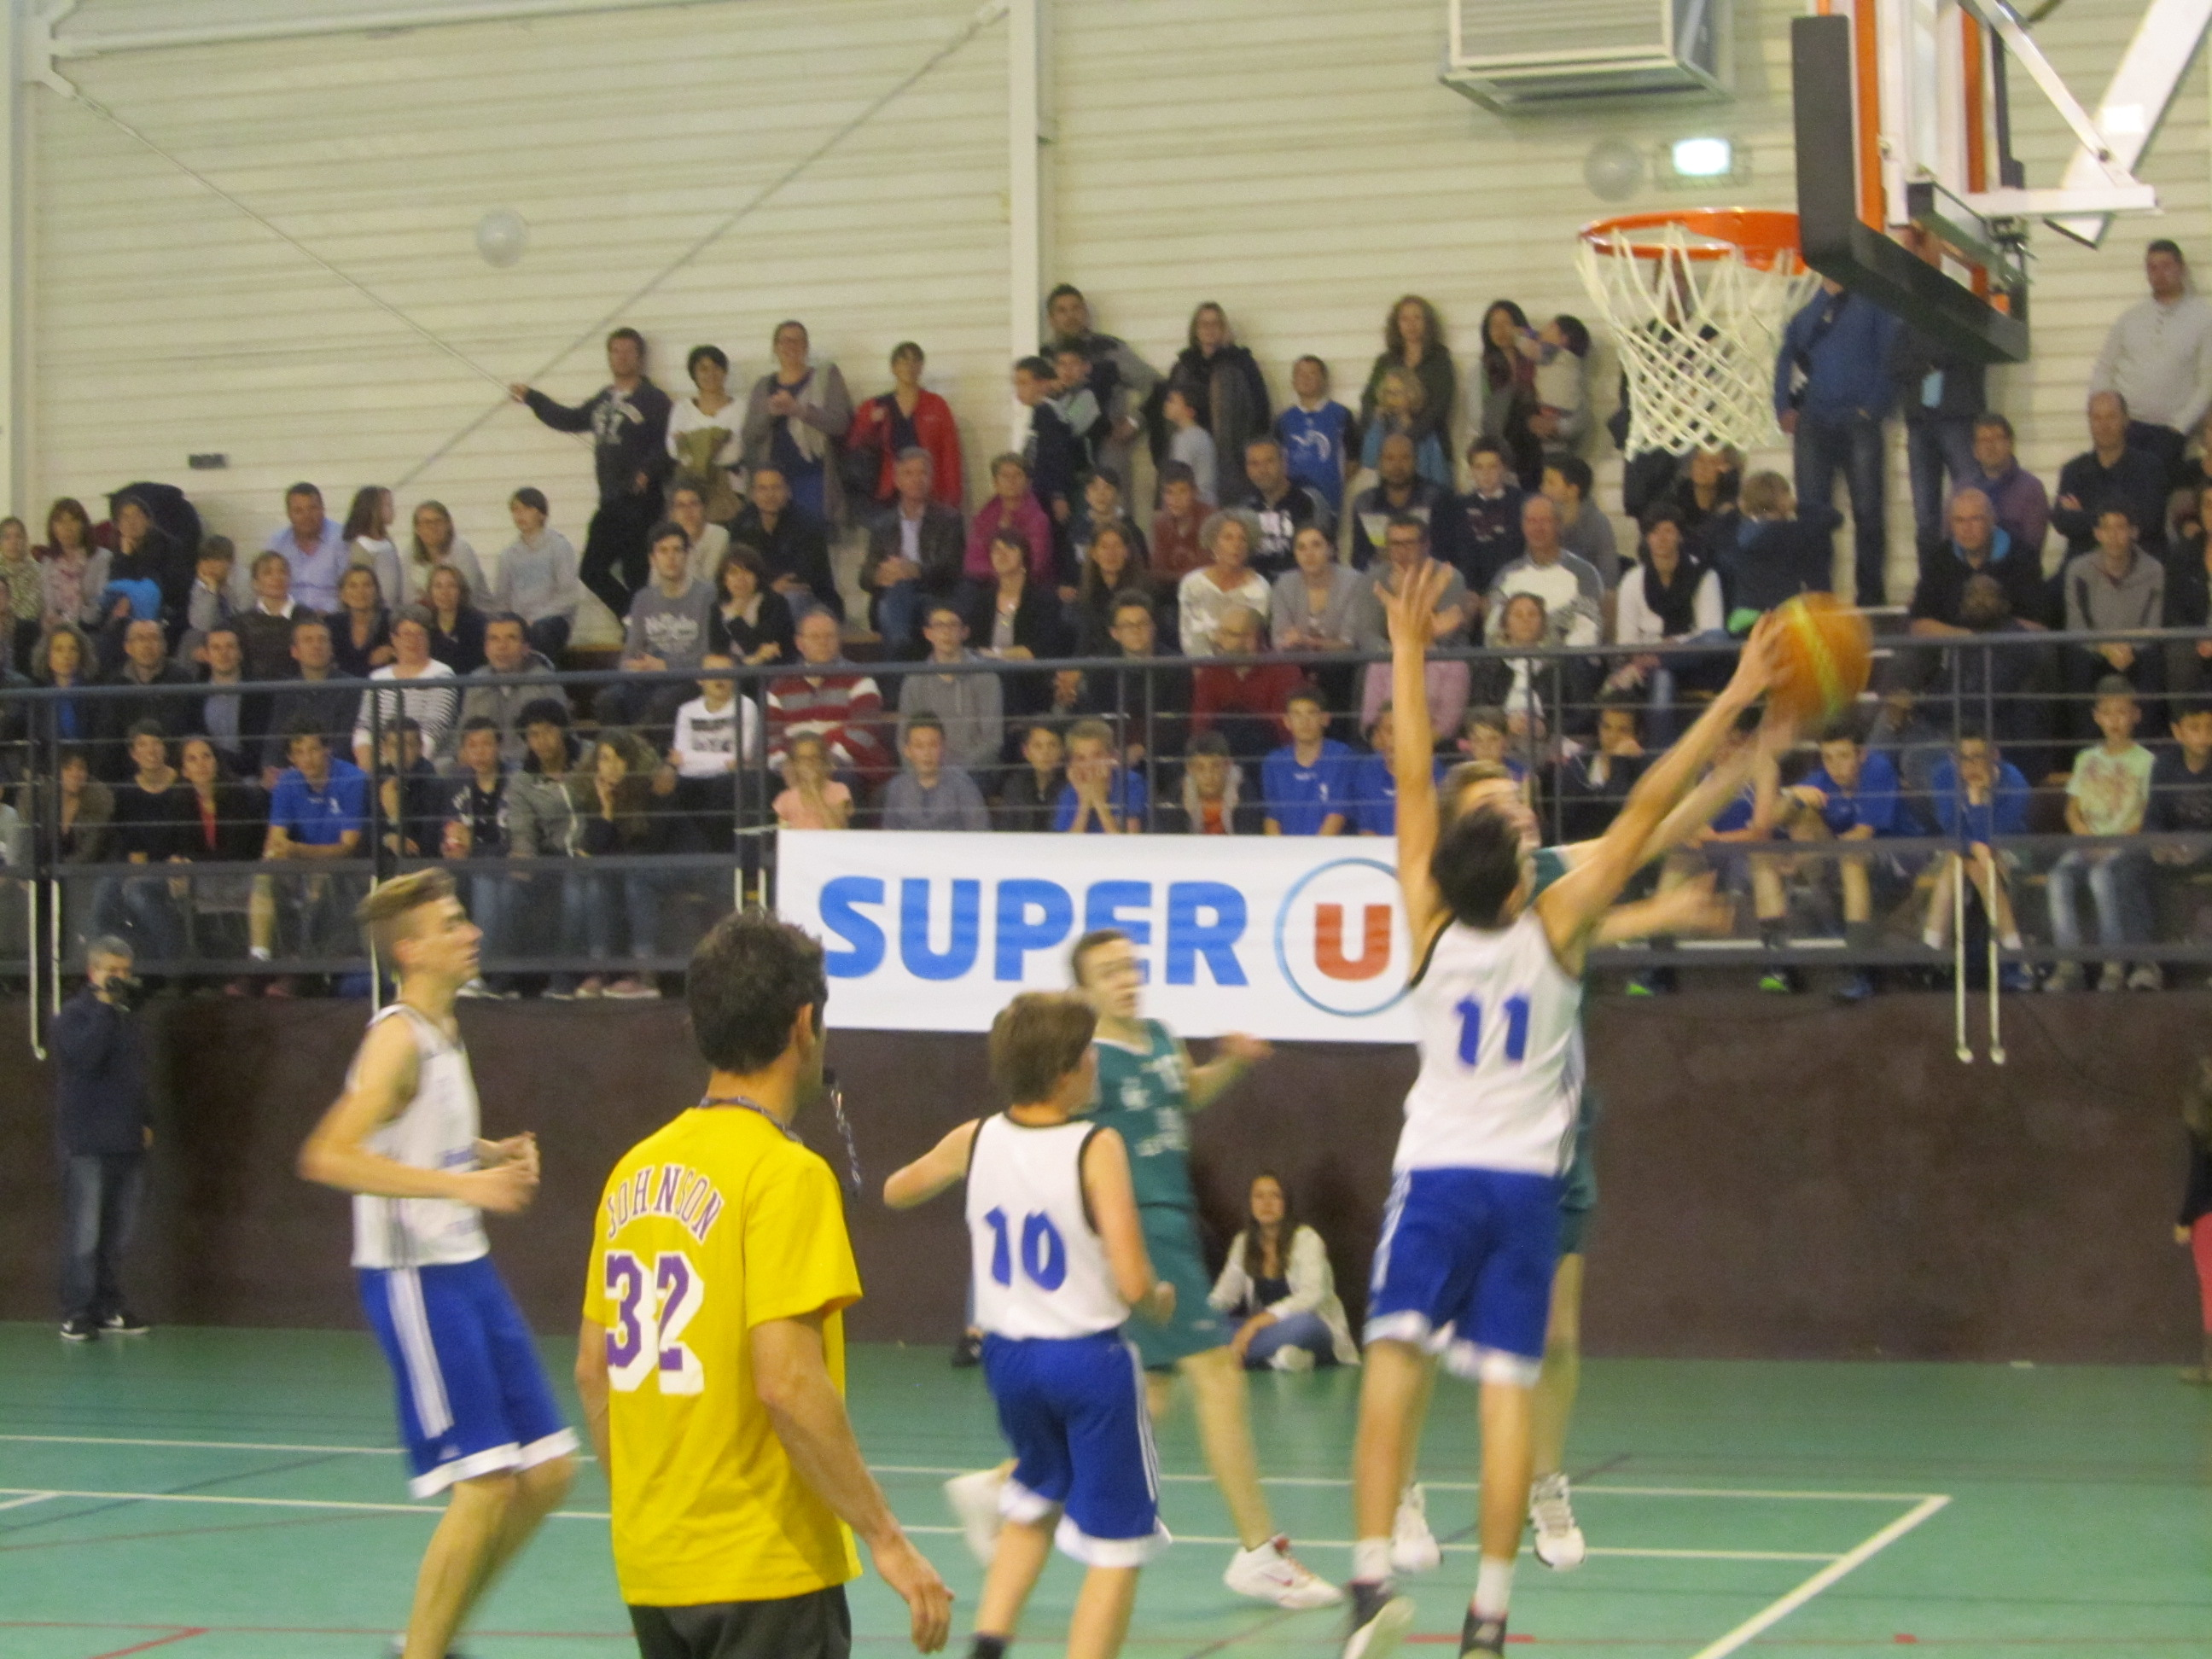 Super U - Tournoi du club